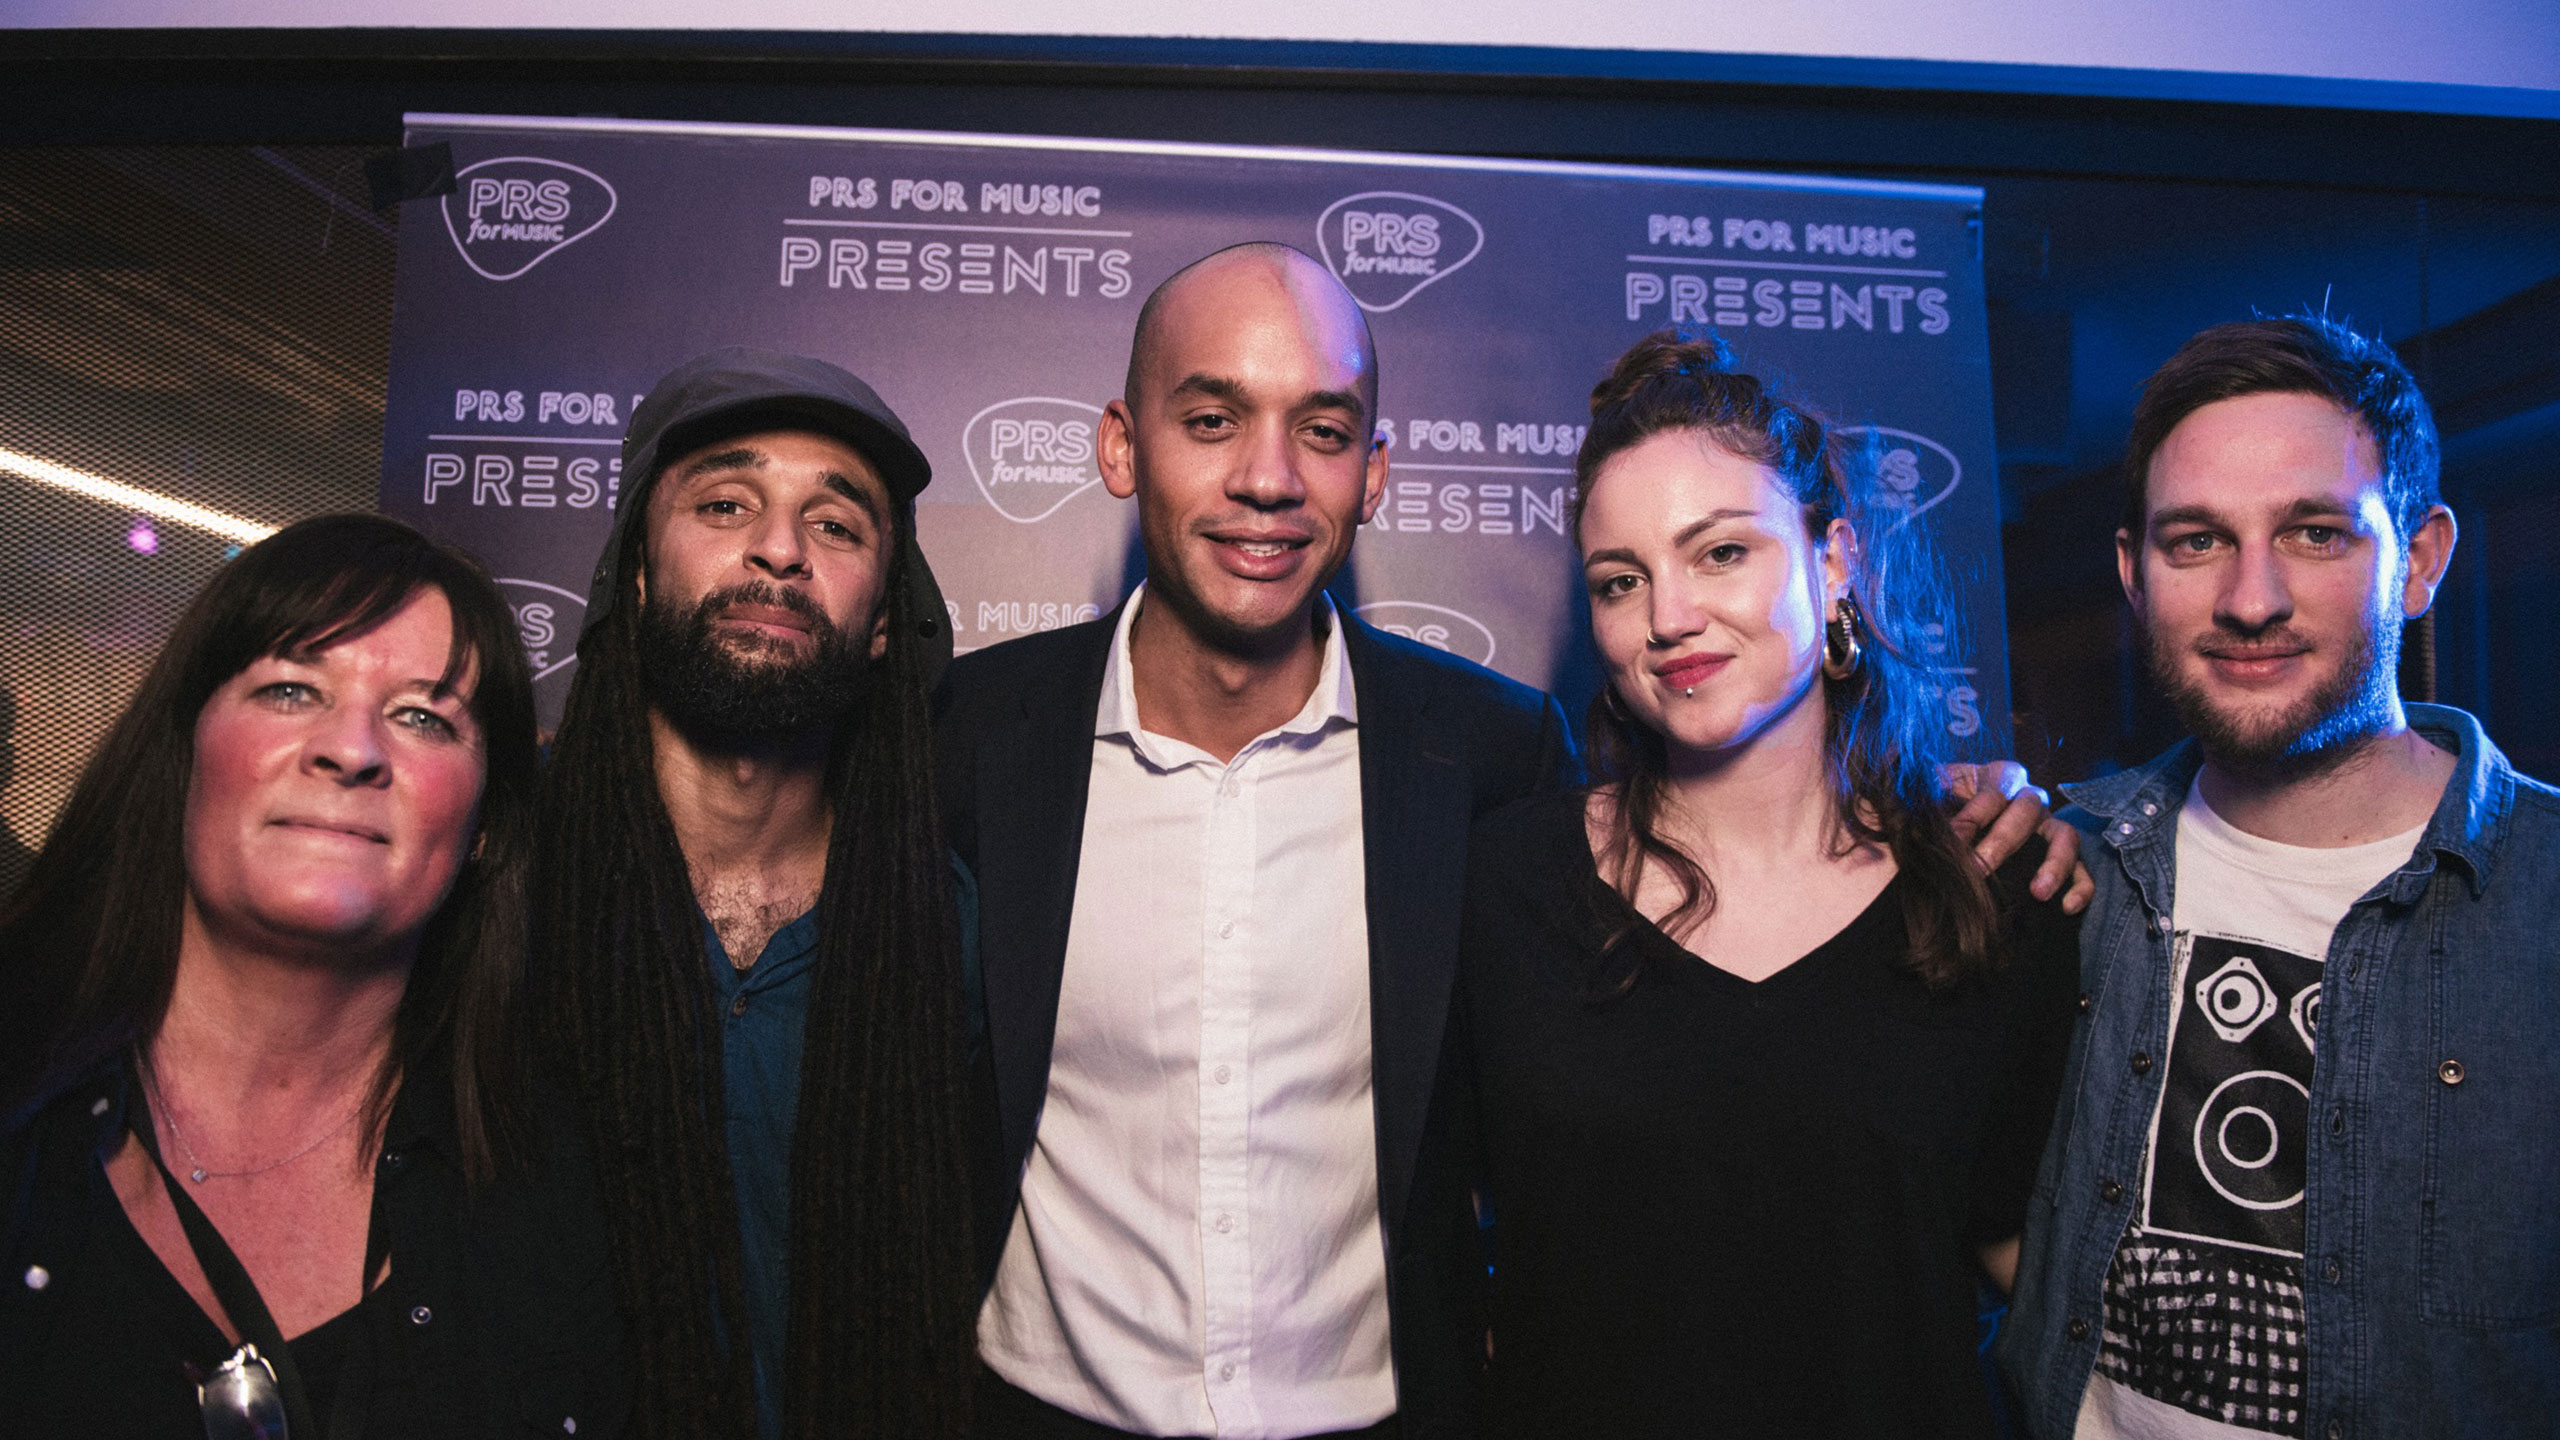 Karen Buse (former director of membership and international), Andrew Ashong, Chuka Umunna, Amy Field (marketing manager, events) at PRS for Music Presents